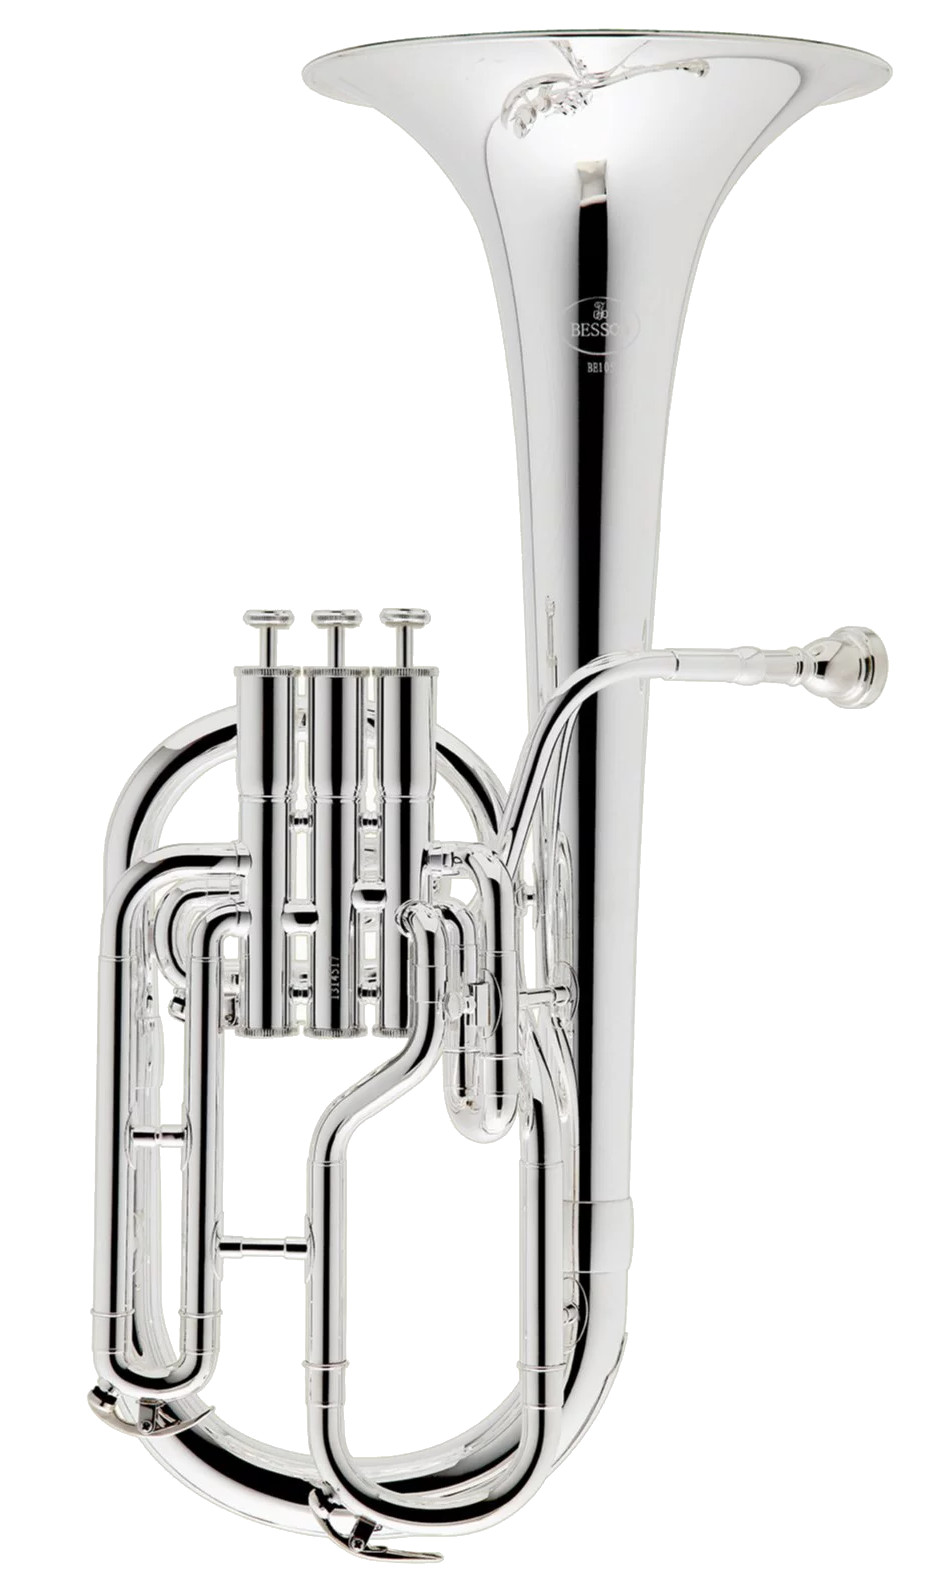 BE152-2-0 - PRODIGE TENOR HORN 152 SILVER PLATED